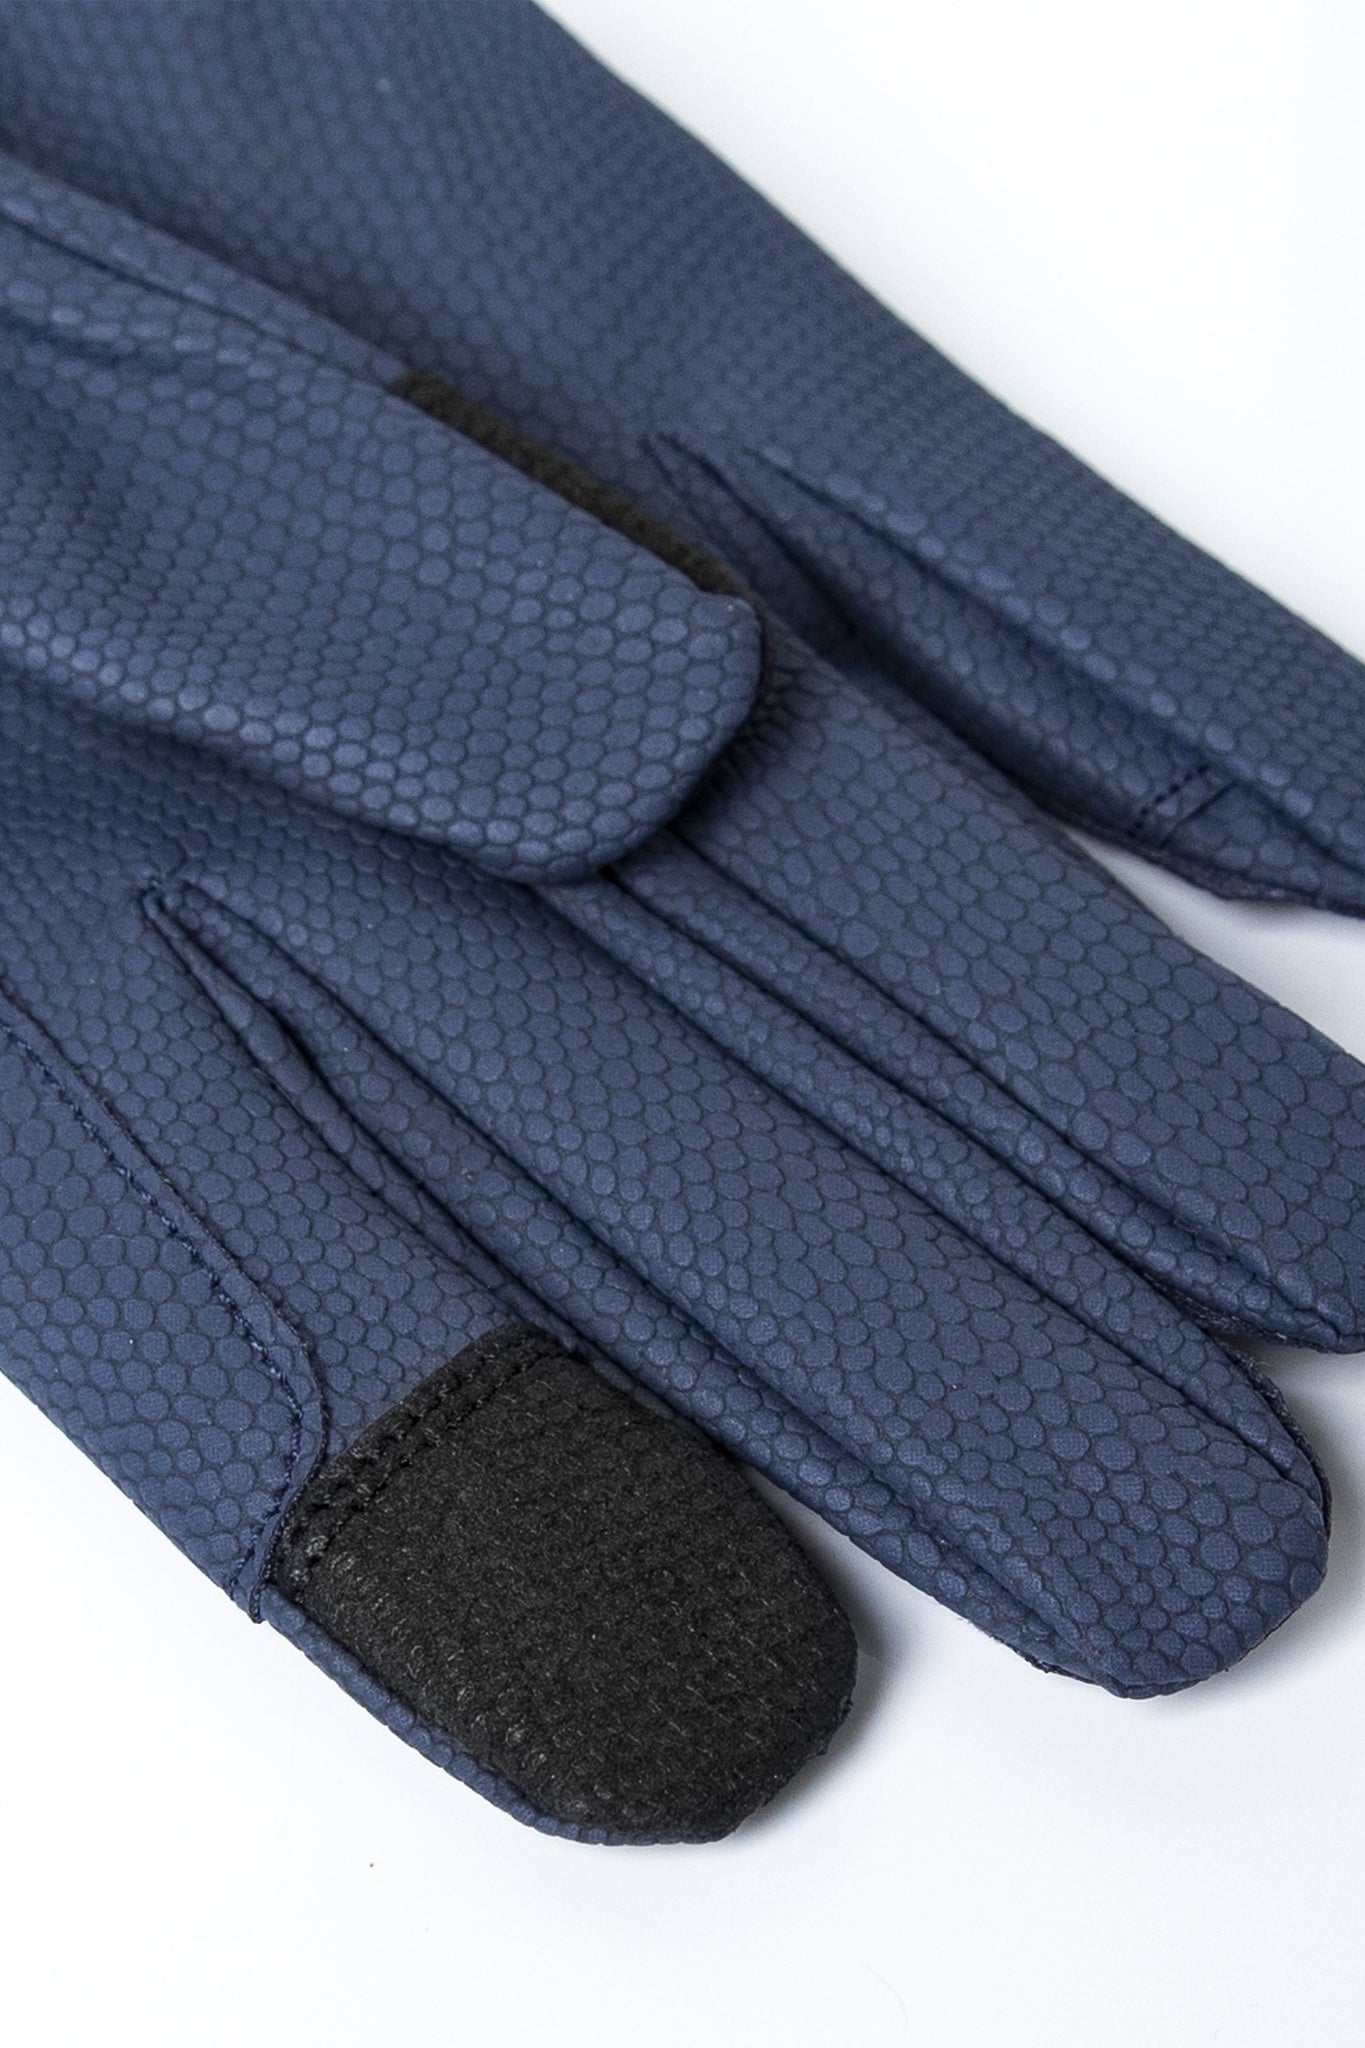 Riding Glove (Navy)